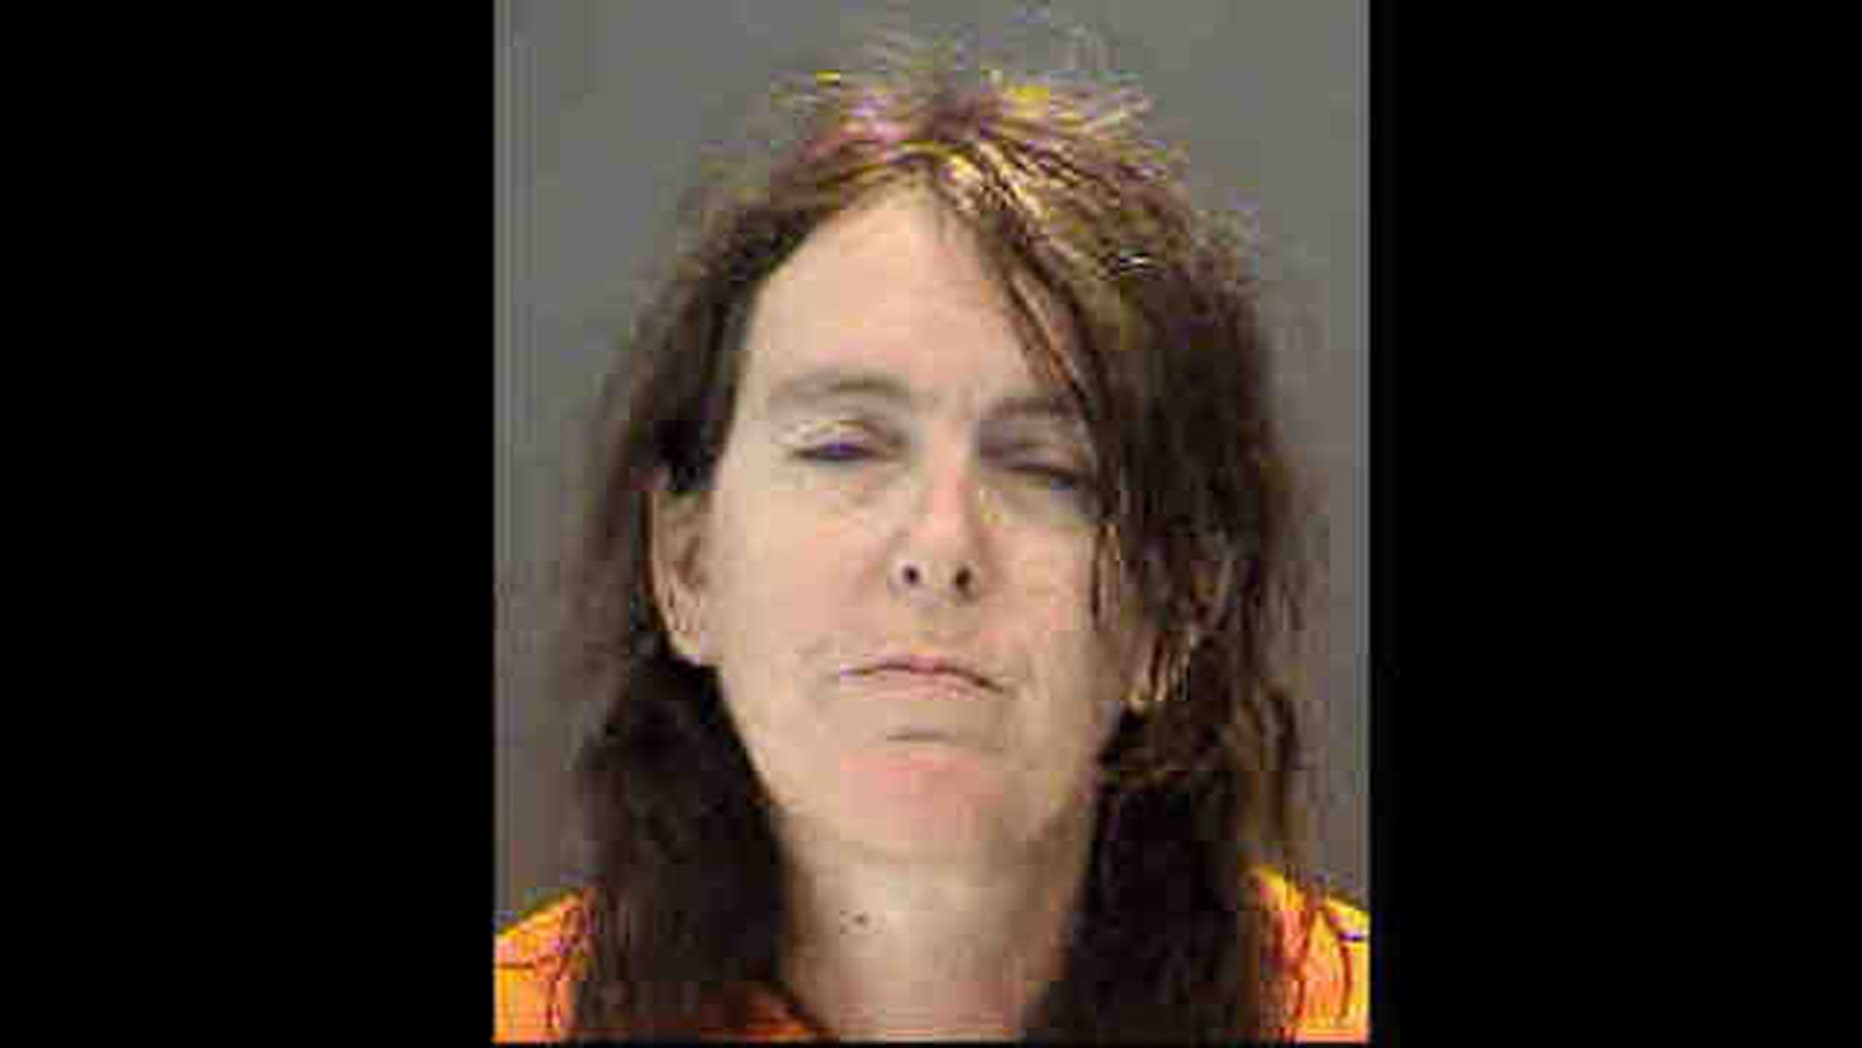 A Florida woman was taken into custody after she called 911 and confessed to murdering her wife during an argument.